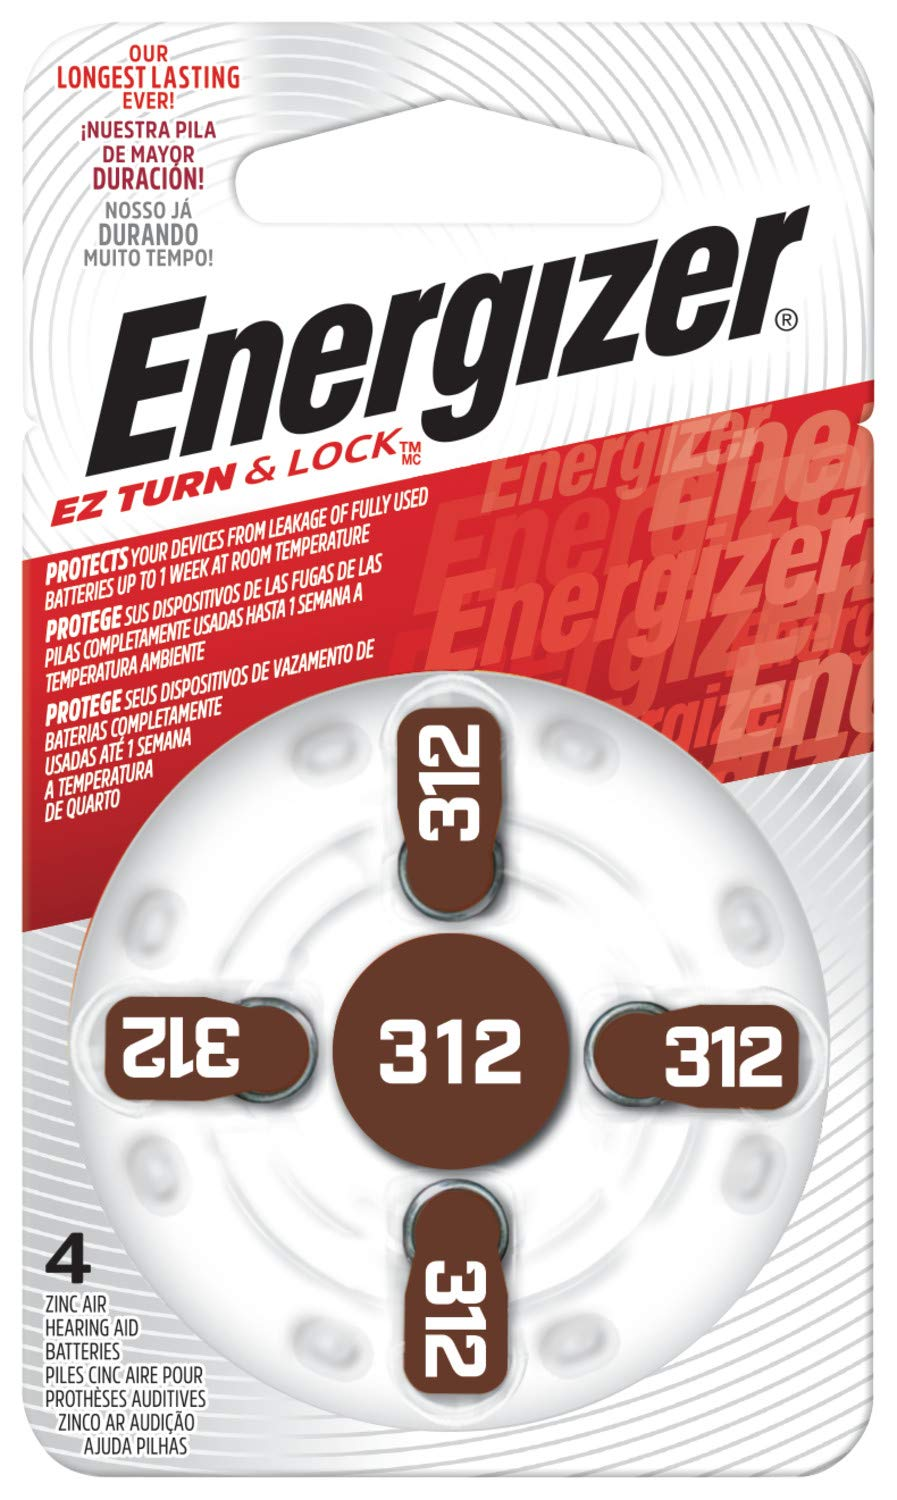 Energizer EZ Turn & Lock Size 312 Hearing Aid Battery, 96-Count by Energizer